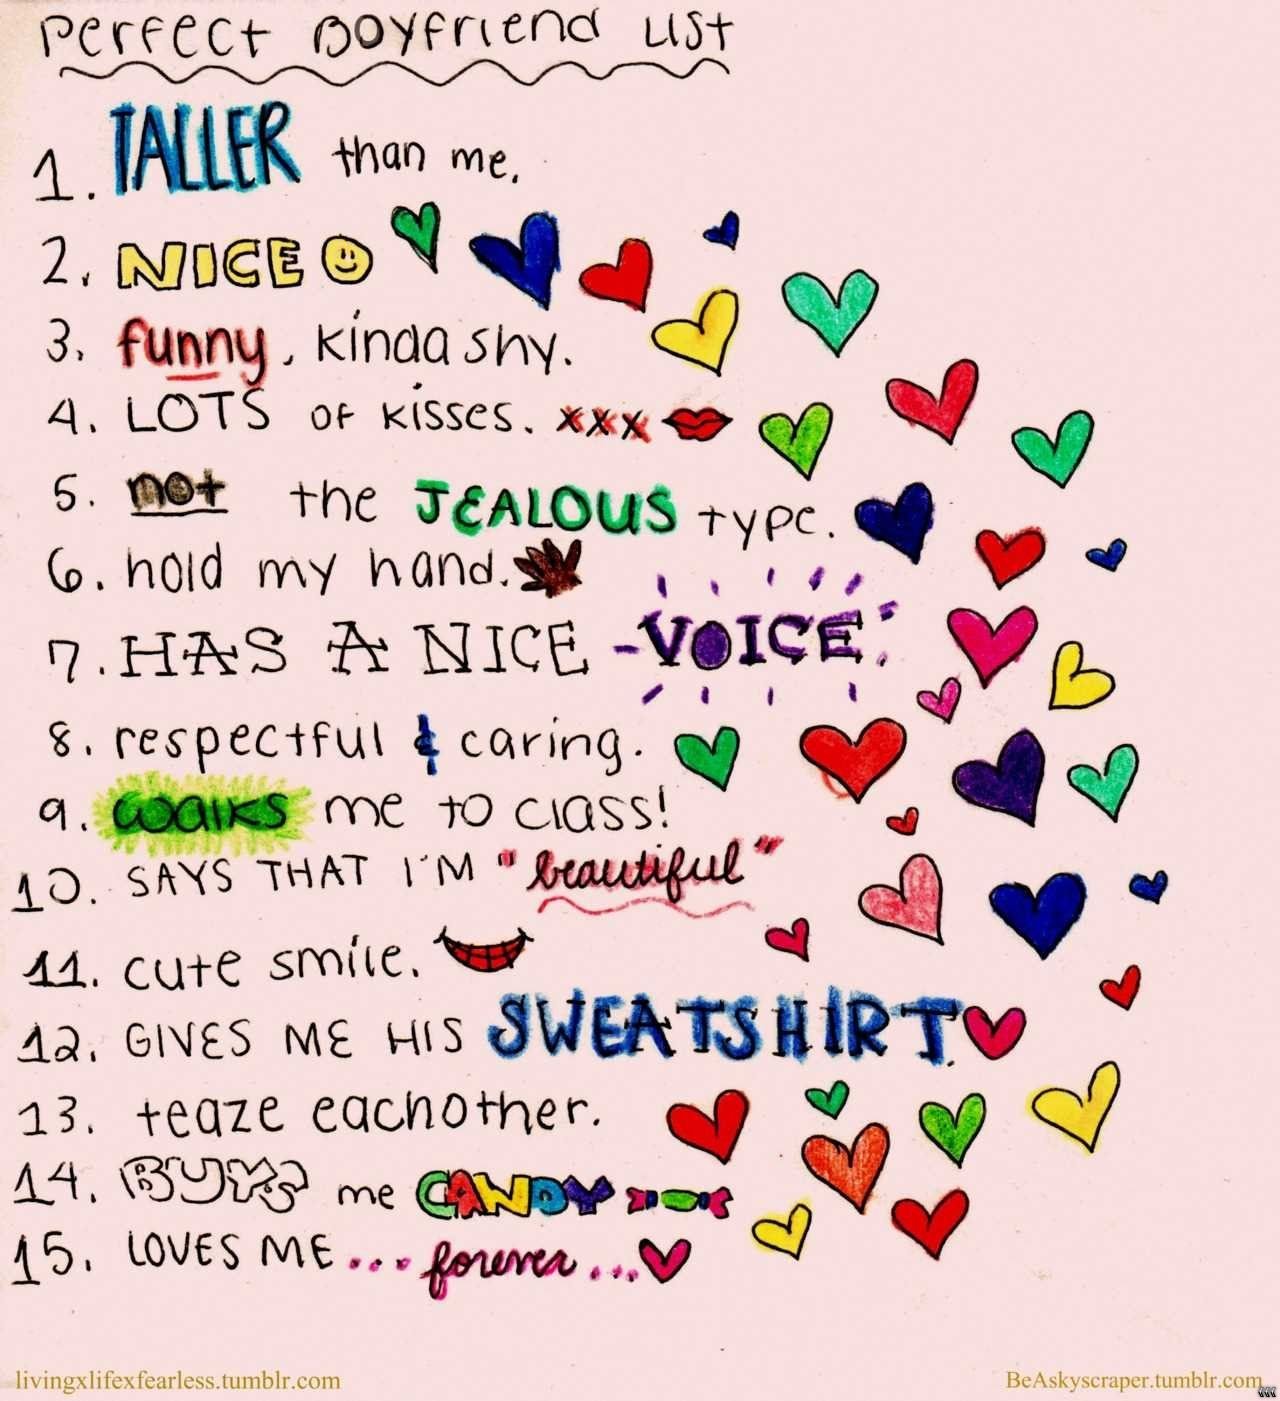 Cute Quotes For Your Boyfriend: Cute Love Quotes For Your Boyfriend For Valentines Day 4